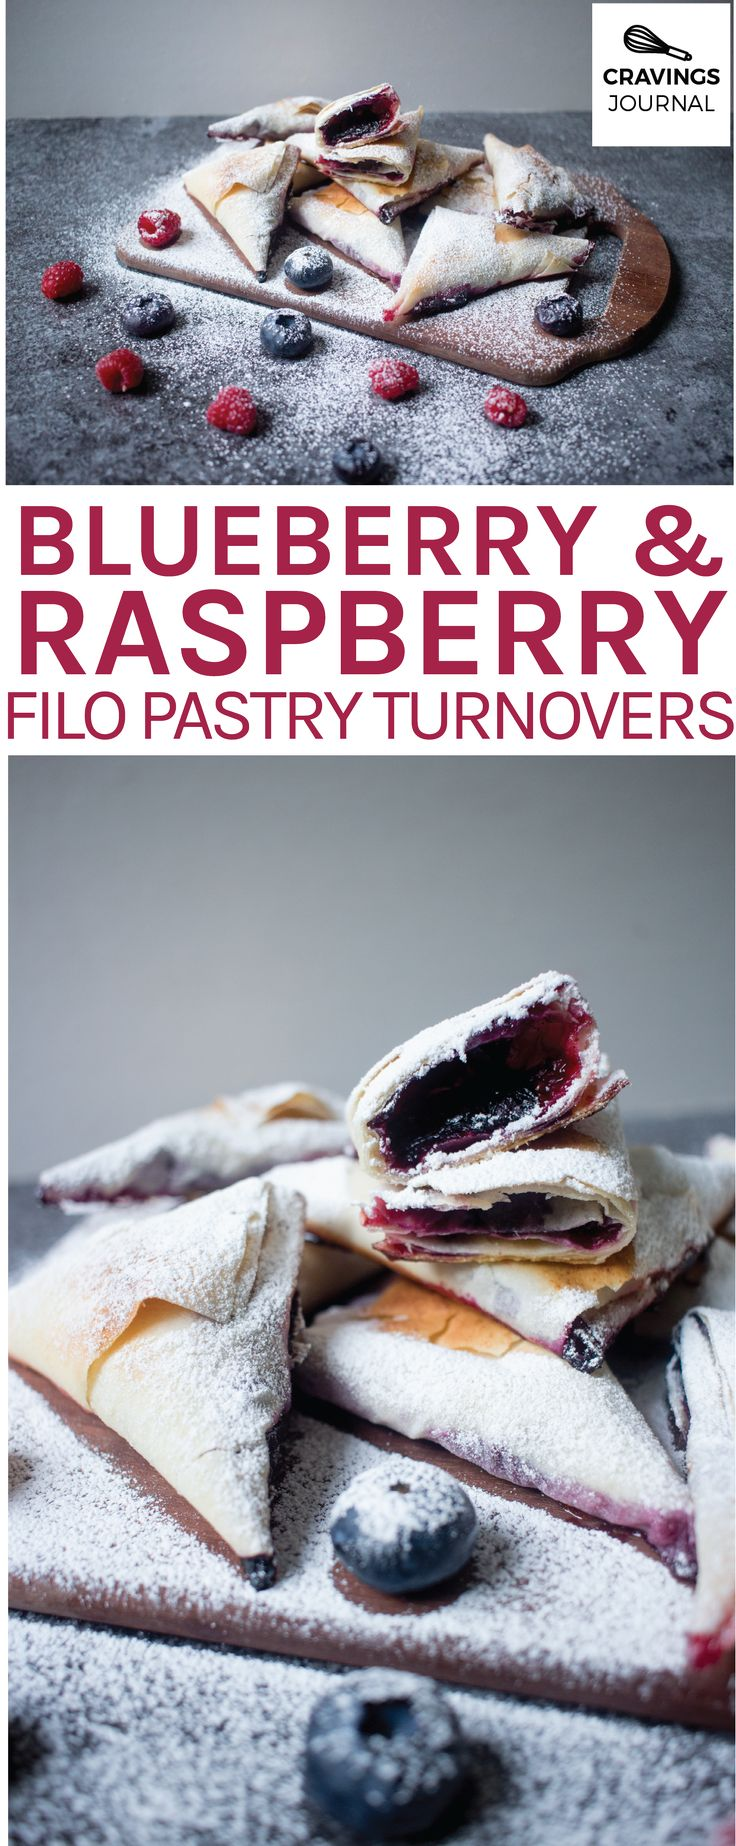 Blueberry and raspberry turnovers wrapped in filo / phyllo pastry by Cravings Journal